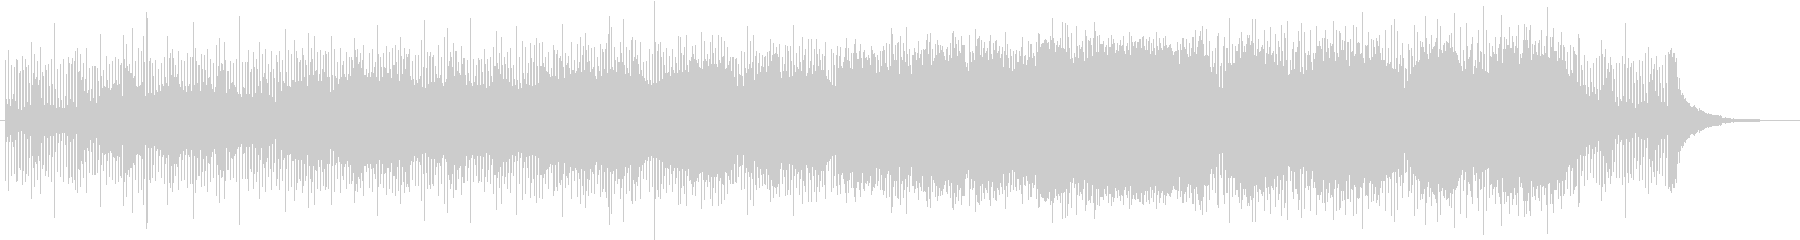 Orchestra with a characteristic feeling of running guitar's unreproduced waveform